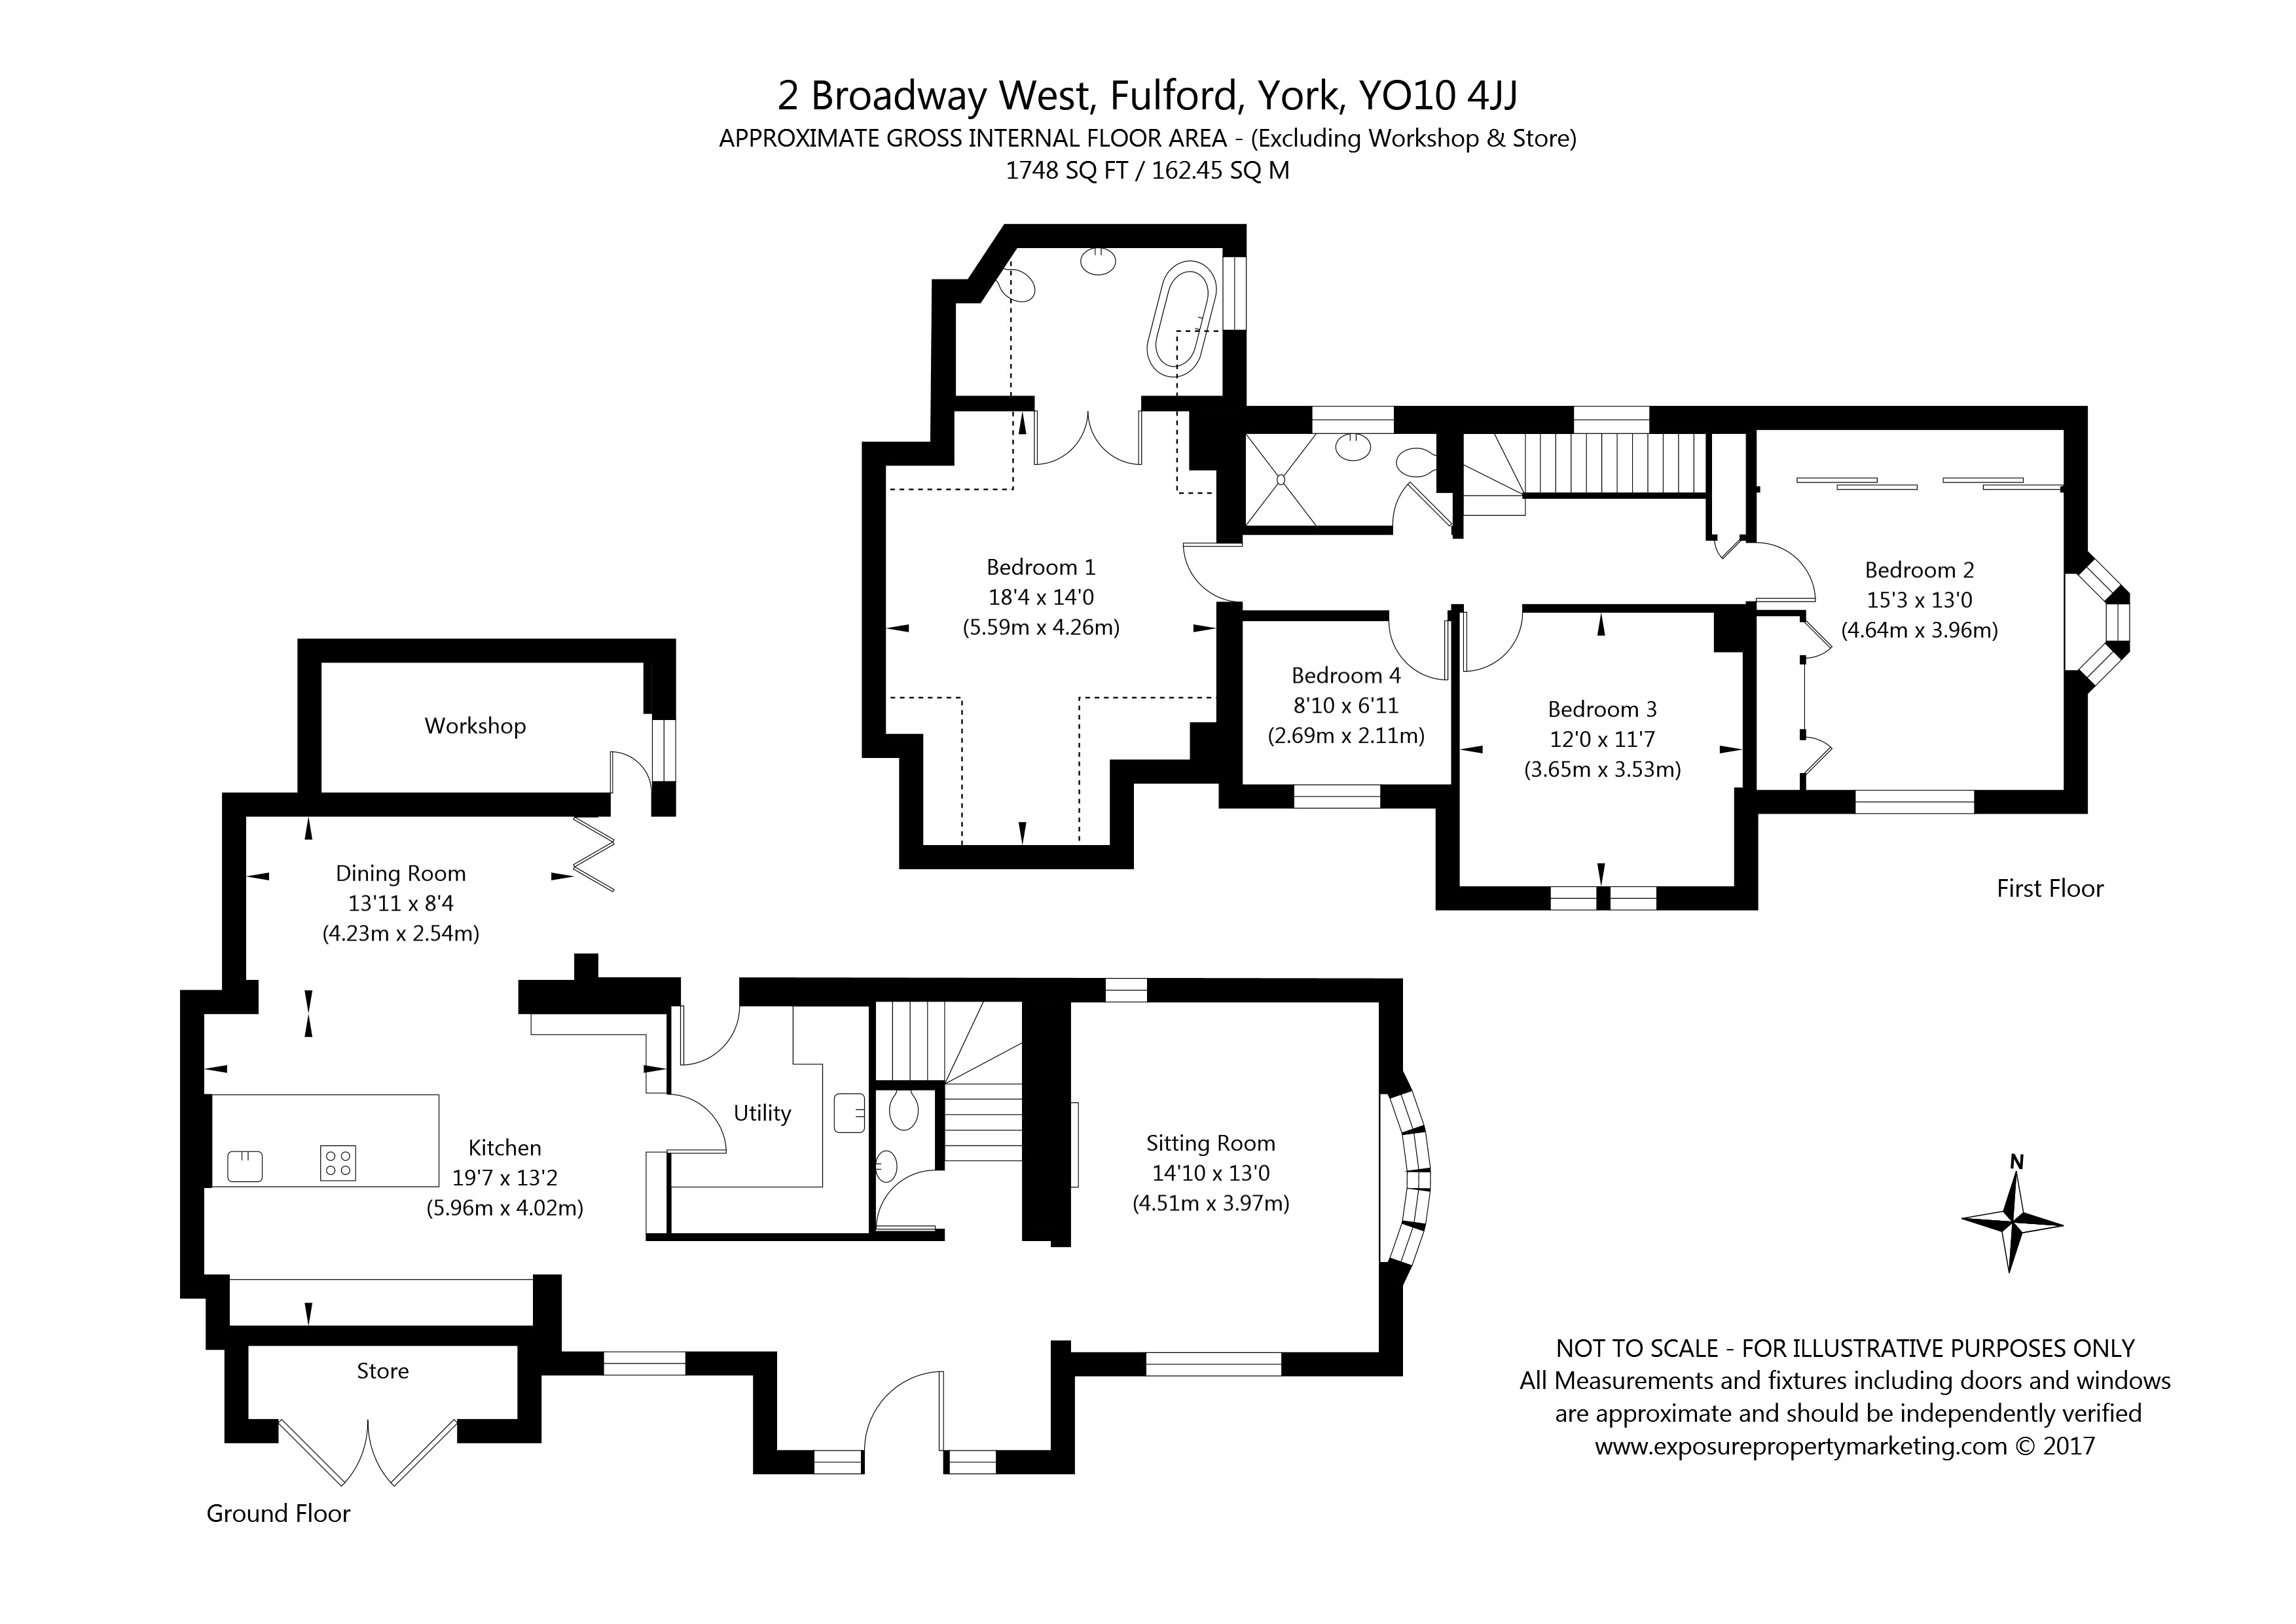 2 Broadway West, Fulford, York property floorplan